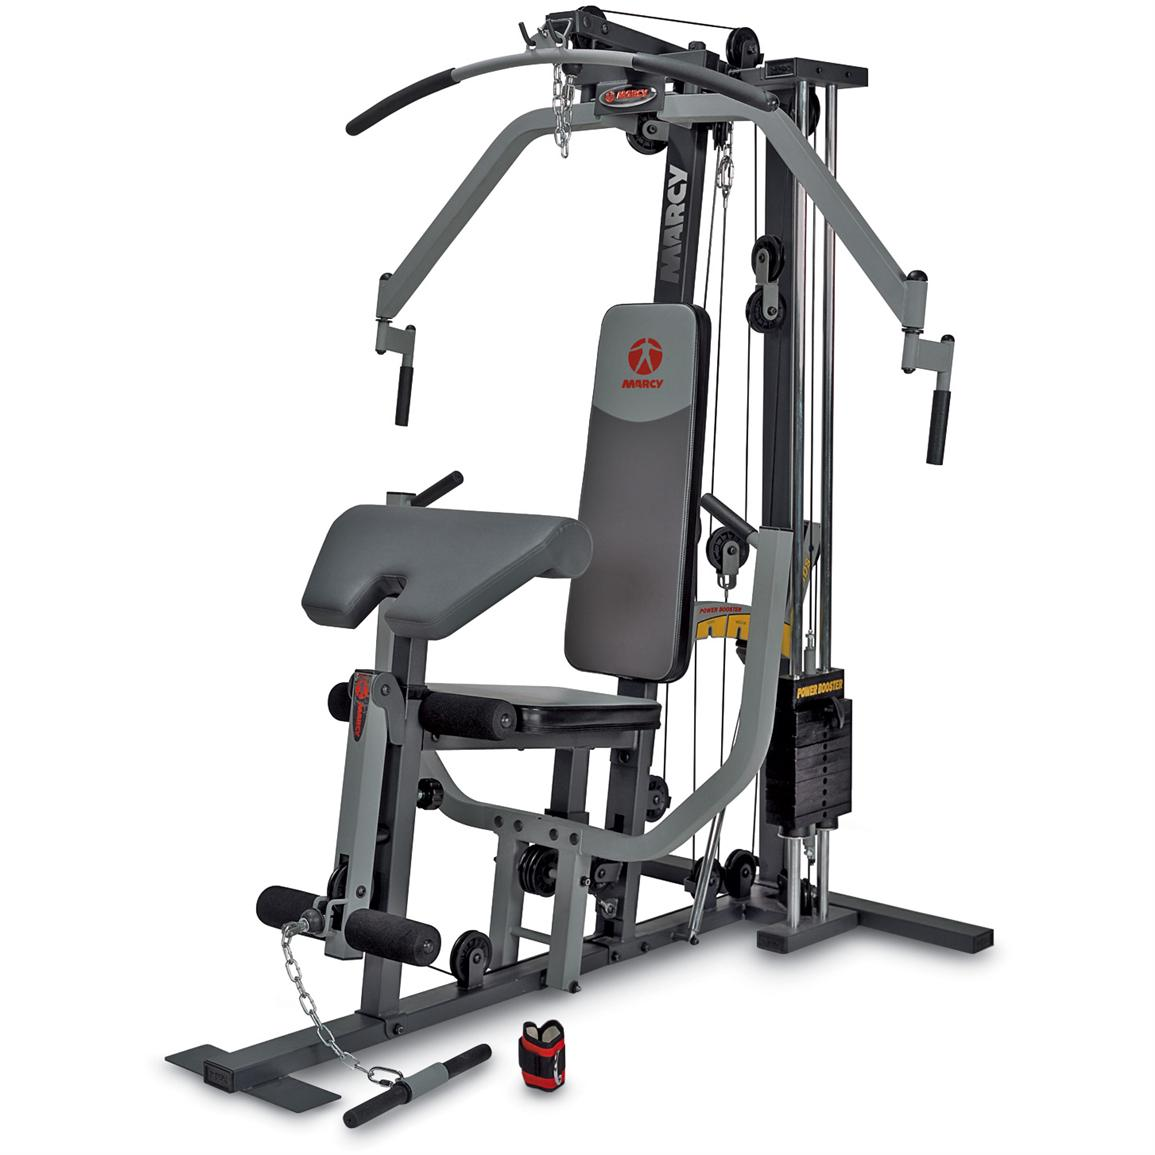 Marcy home gym review